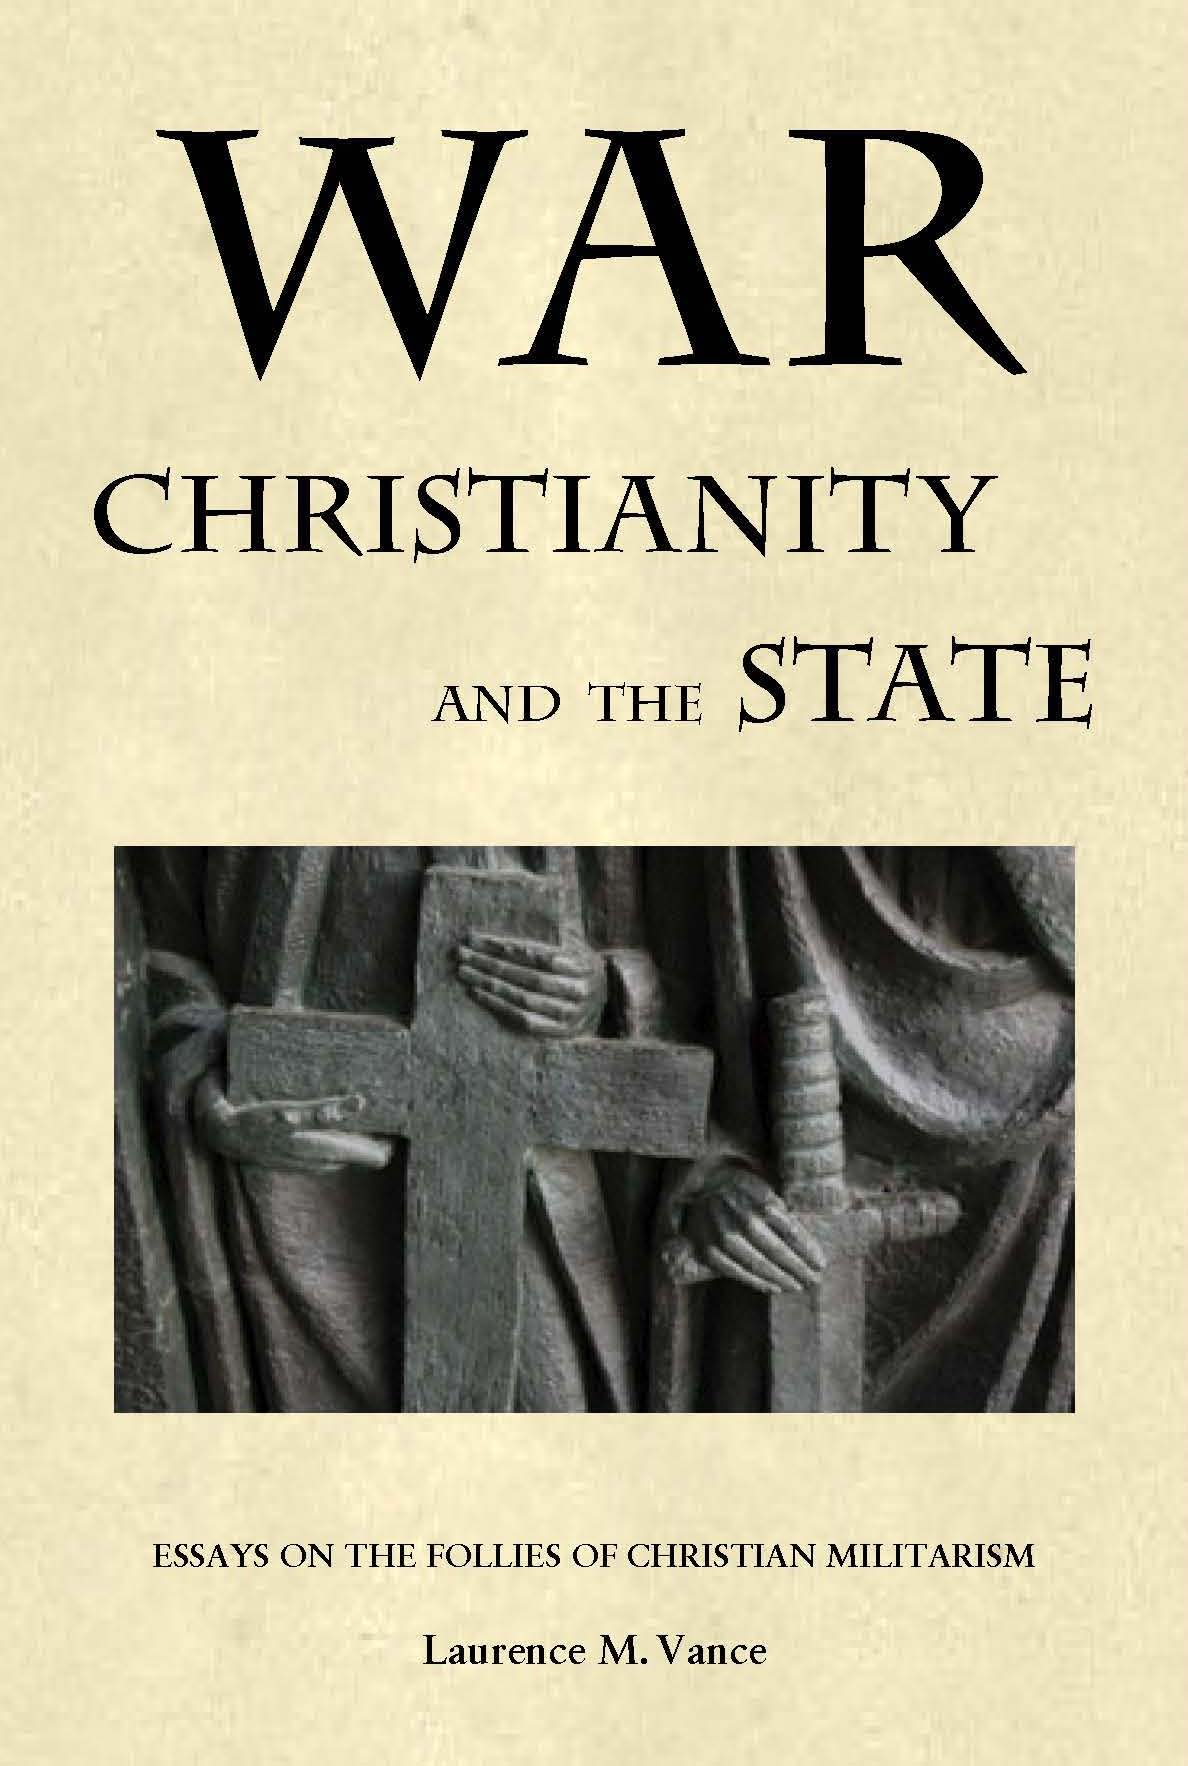 war christianity and the state essays on the follies of war christianity and the state essays on the follies of christian militarism laurence m vance 9780982369760 amazon com books